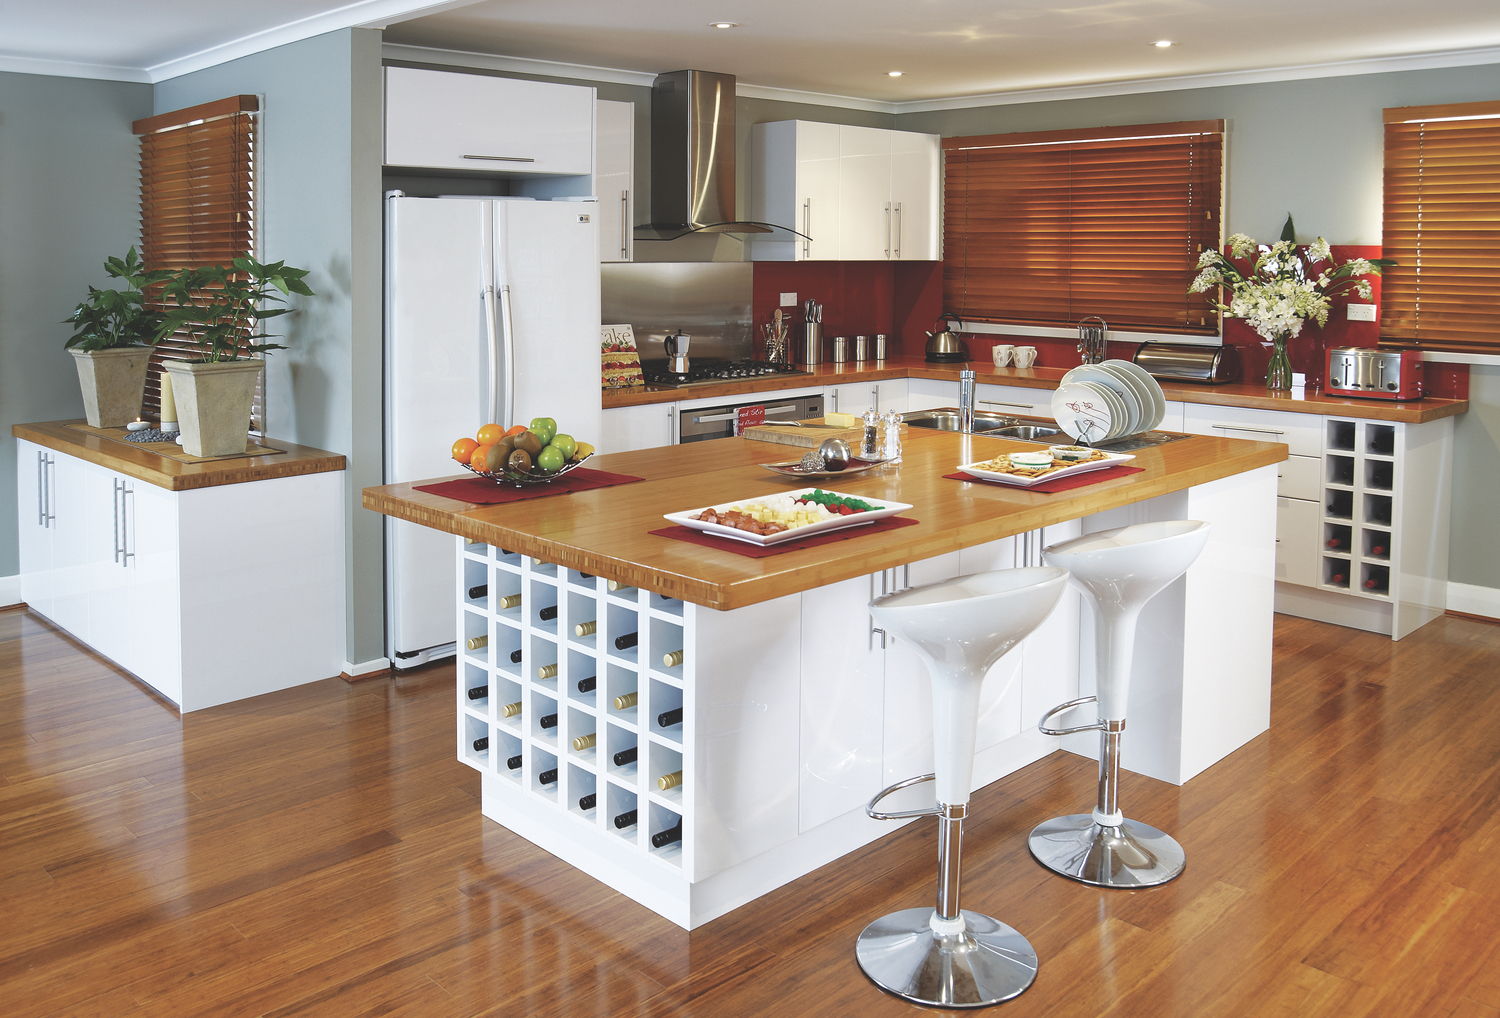 The Practical Entertainer Kitchen Ideas And Inspiration